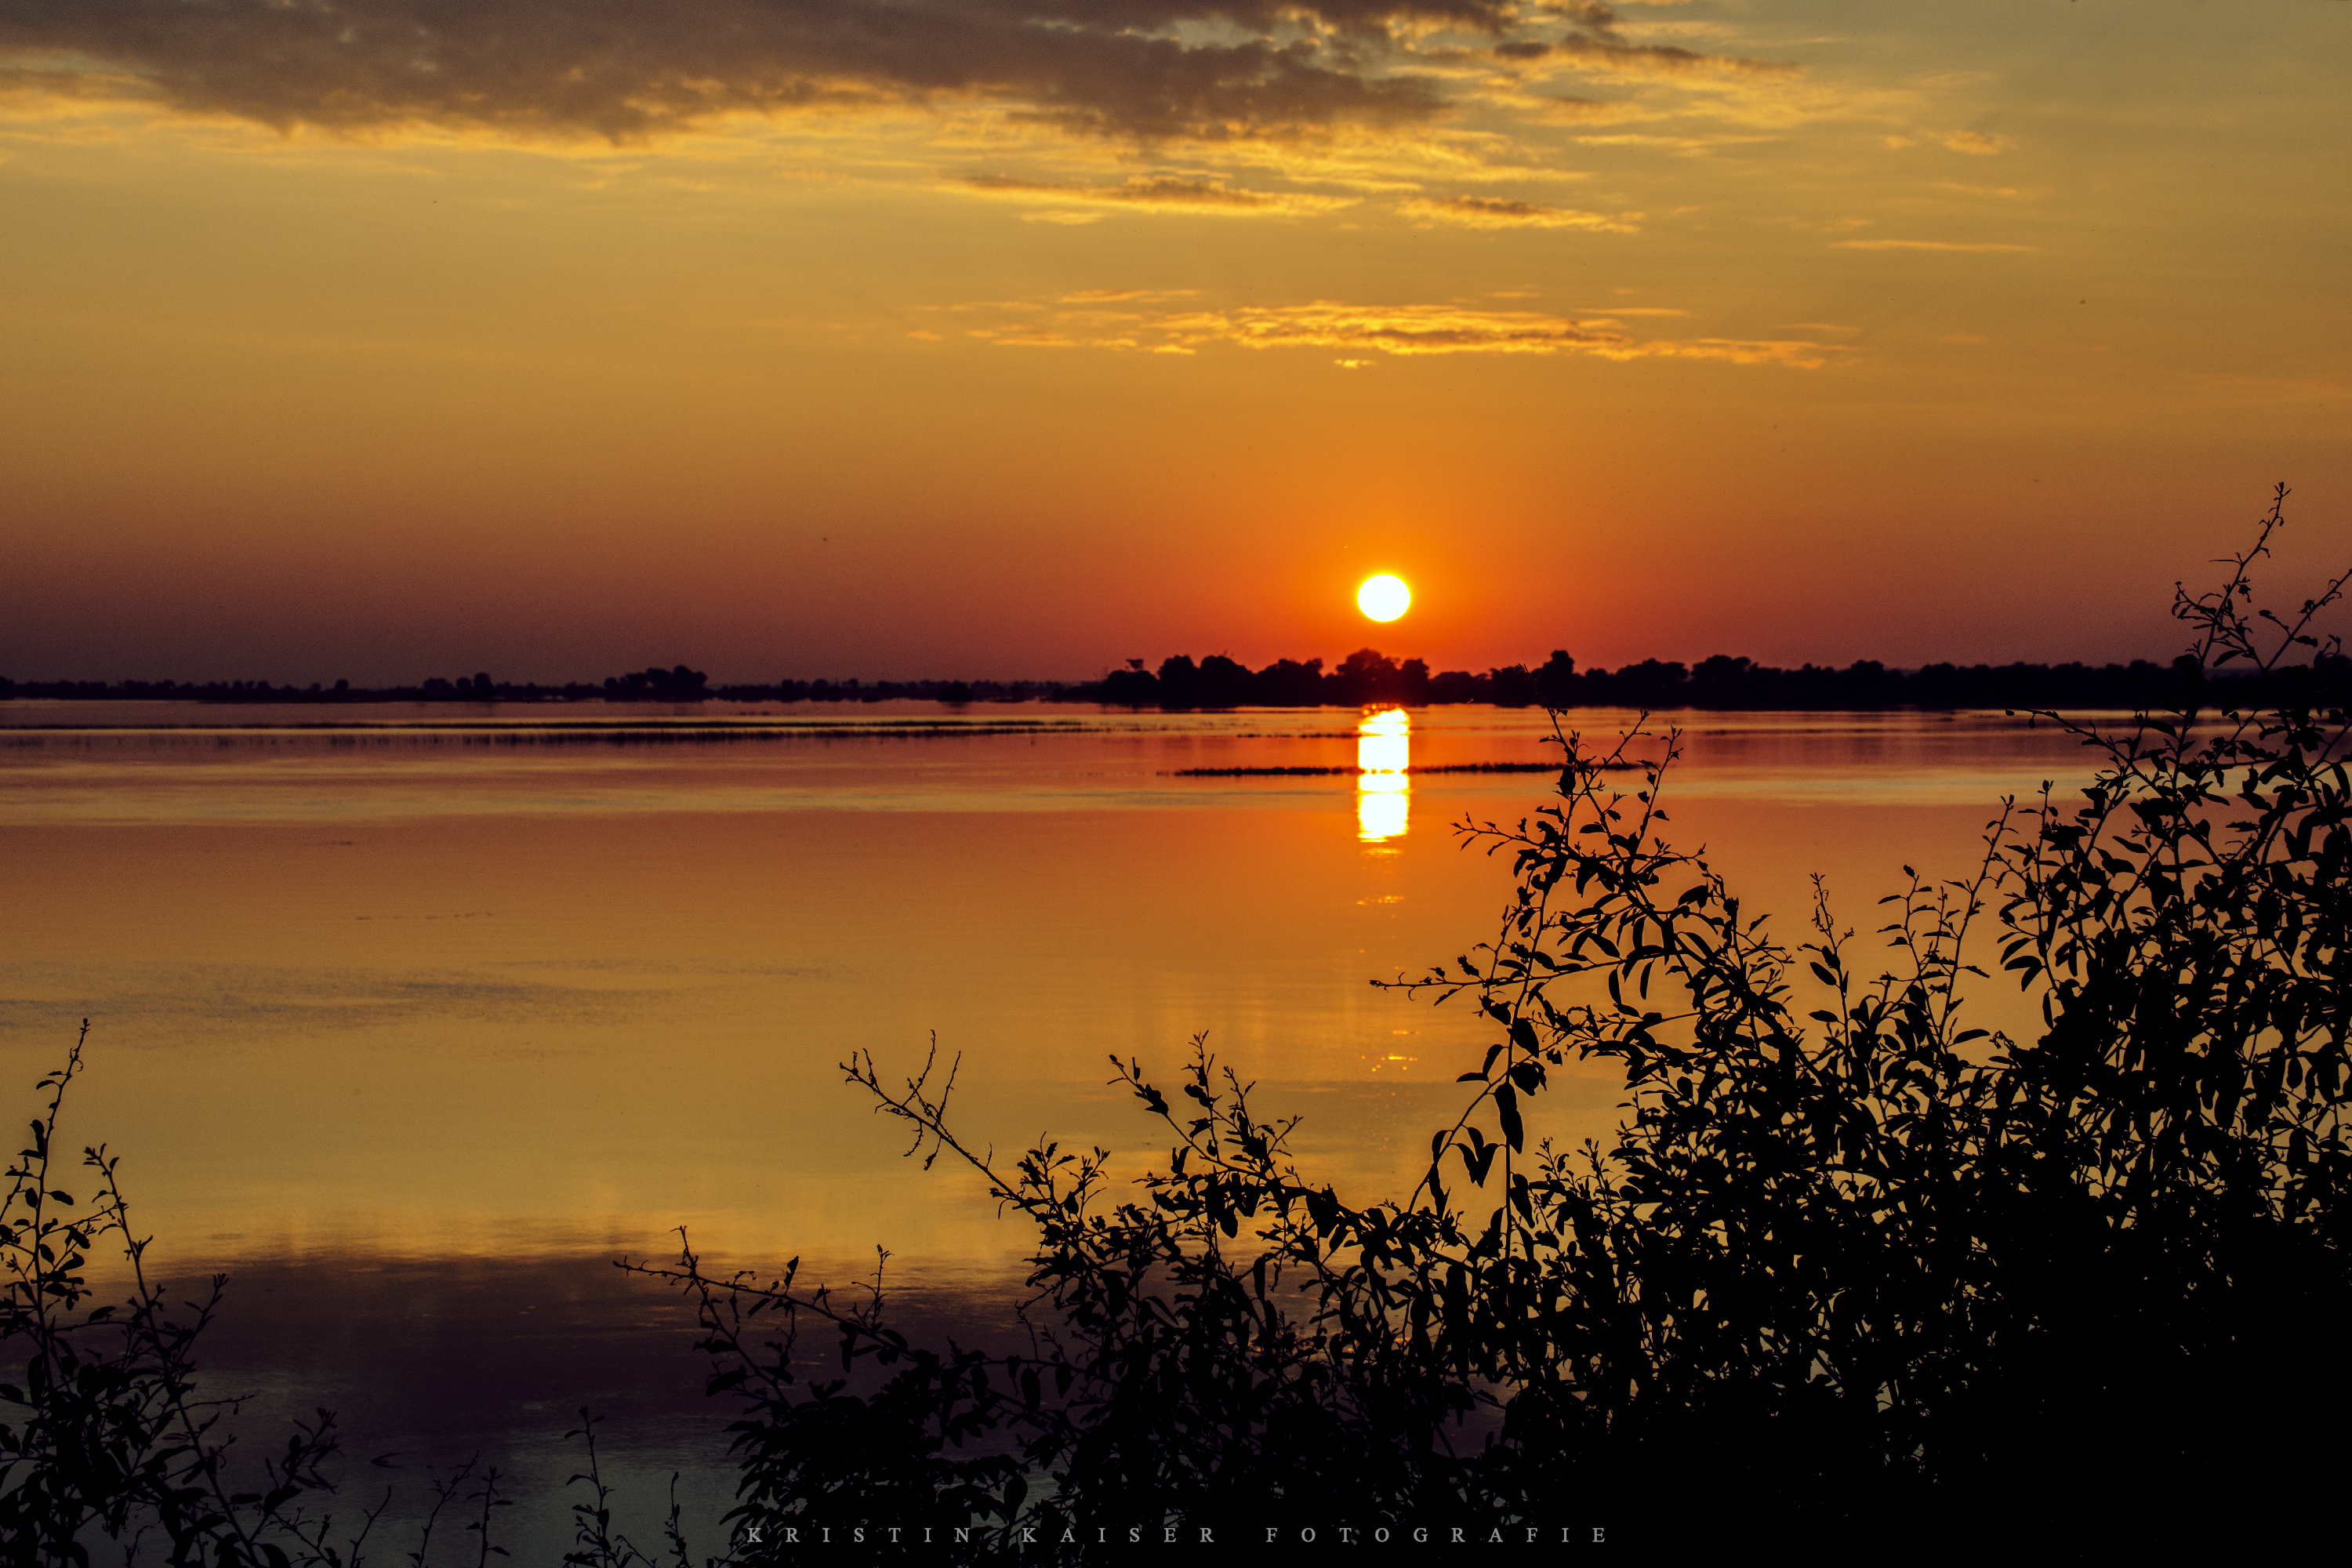 Sunrise at Chobe River Front